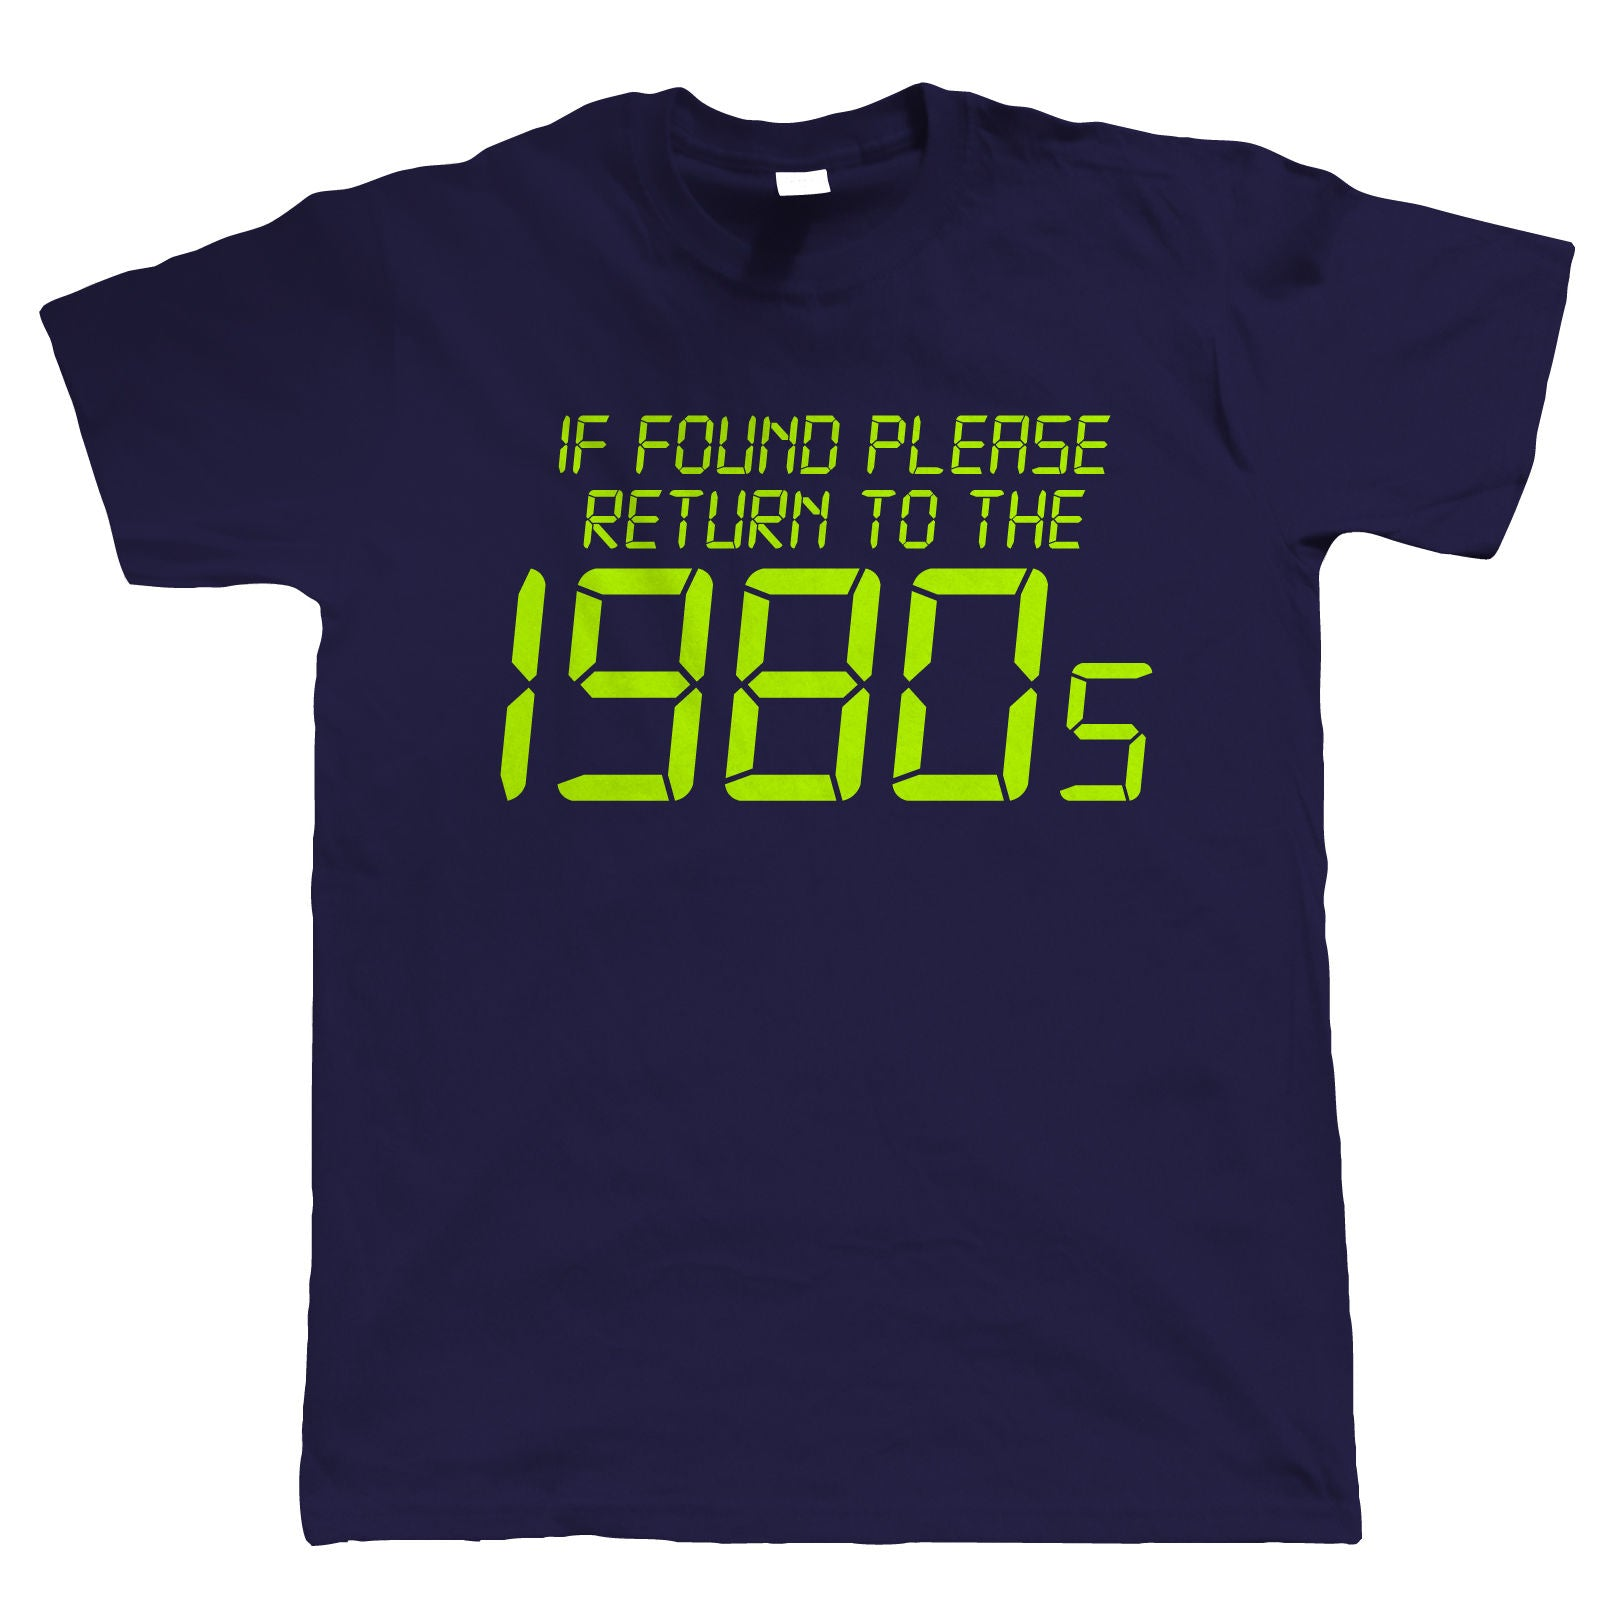 If Found Please Return To The 1980s, Mens Funny T-Shirt